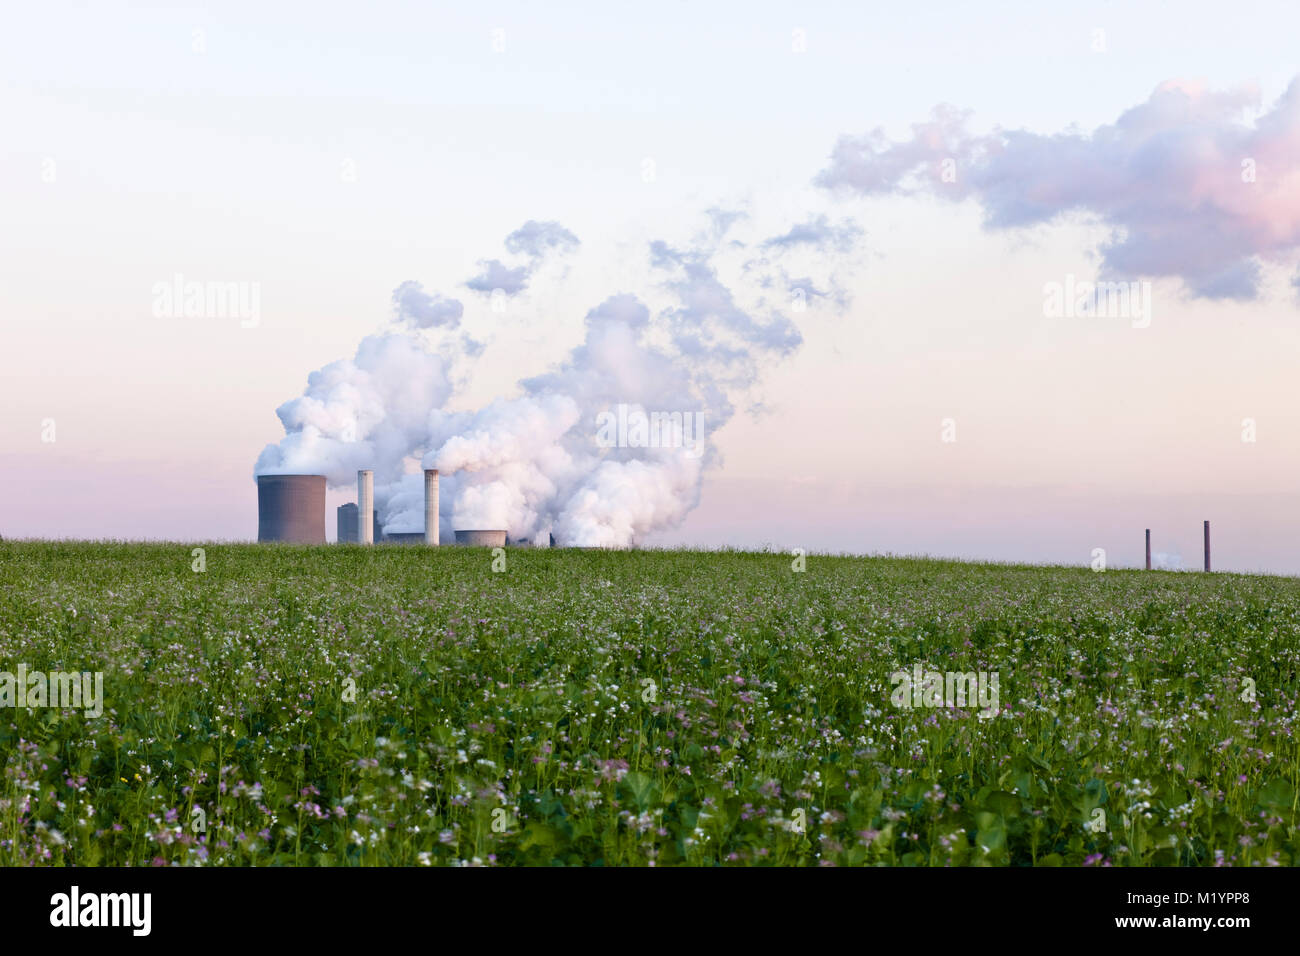 Ignite-fired power plant Niederaussem in the Cologne area, Germany - Stock Image